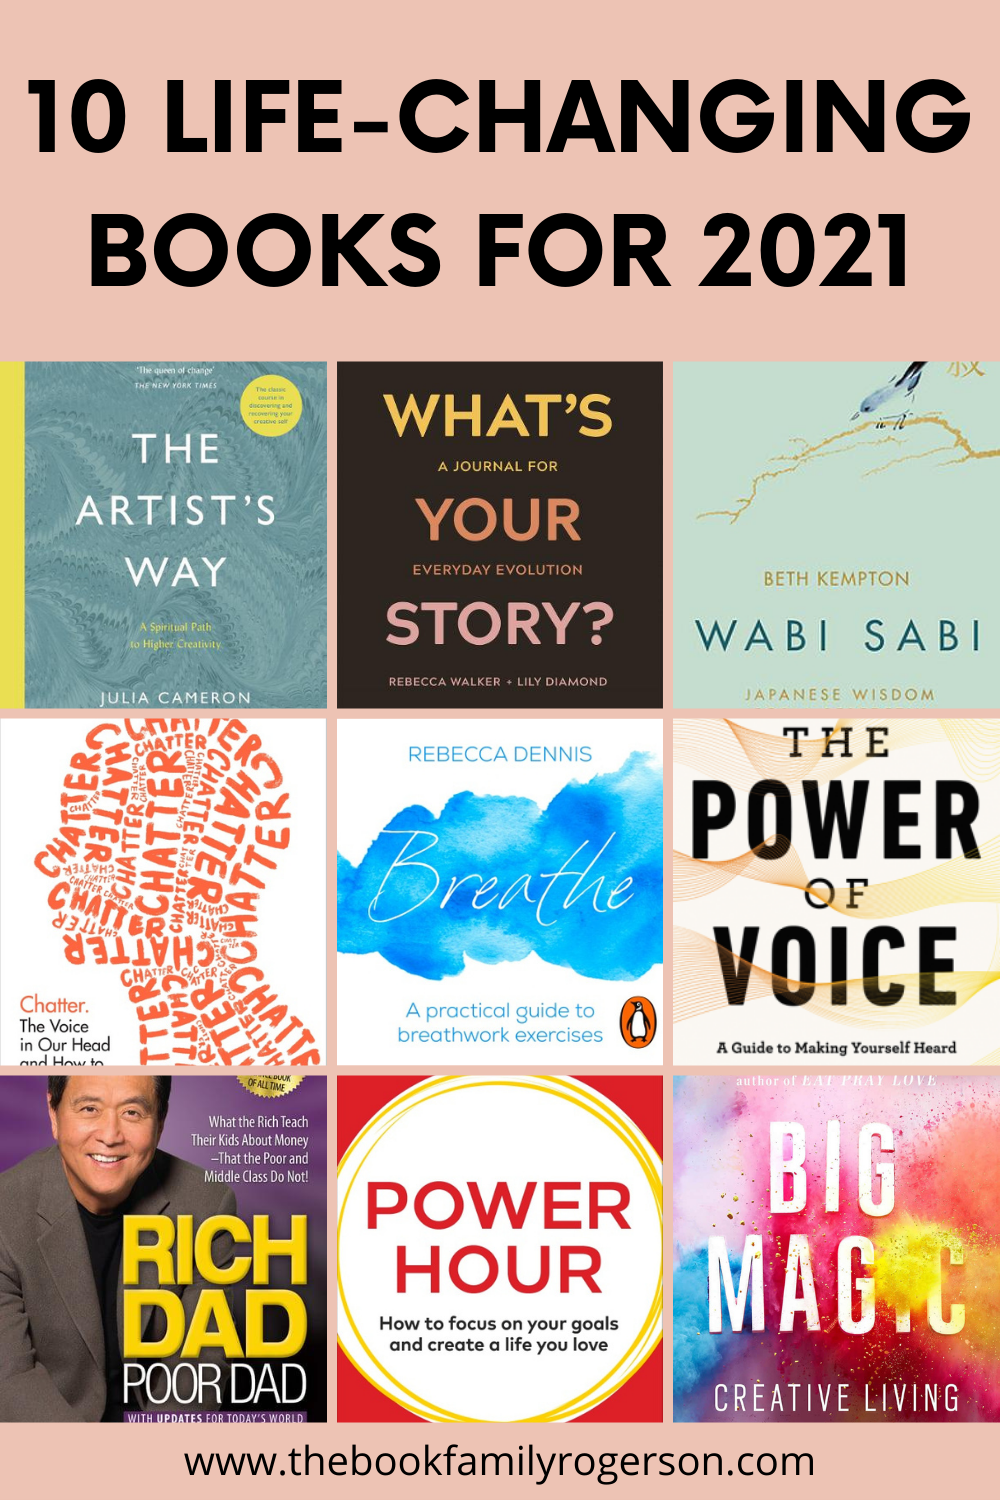 A grid of 9 self development book covers to depict 10 life-changing books for 2021.